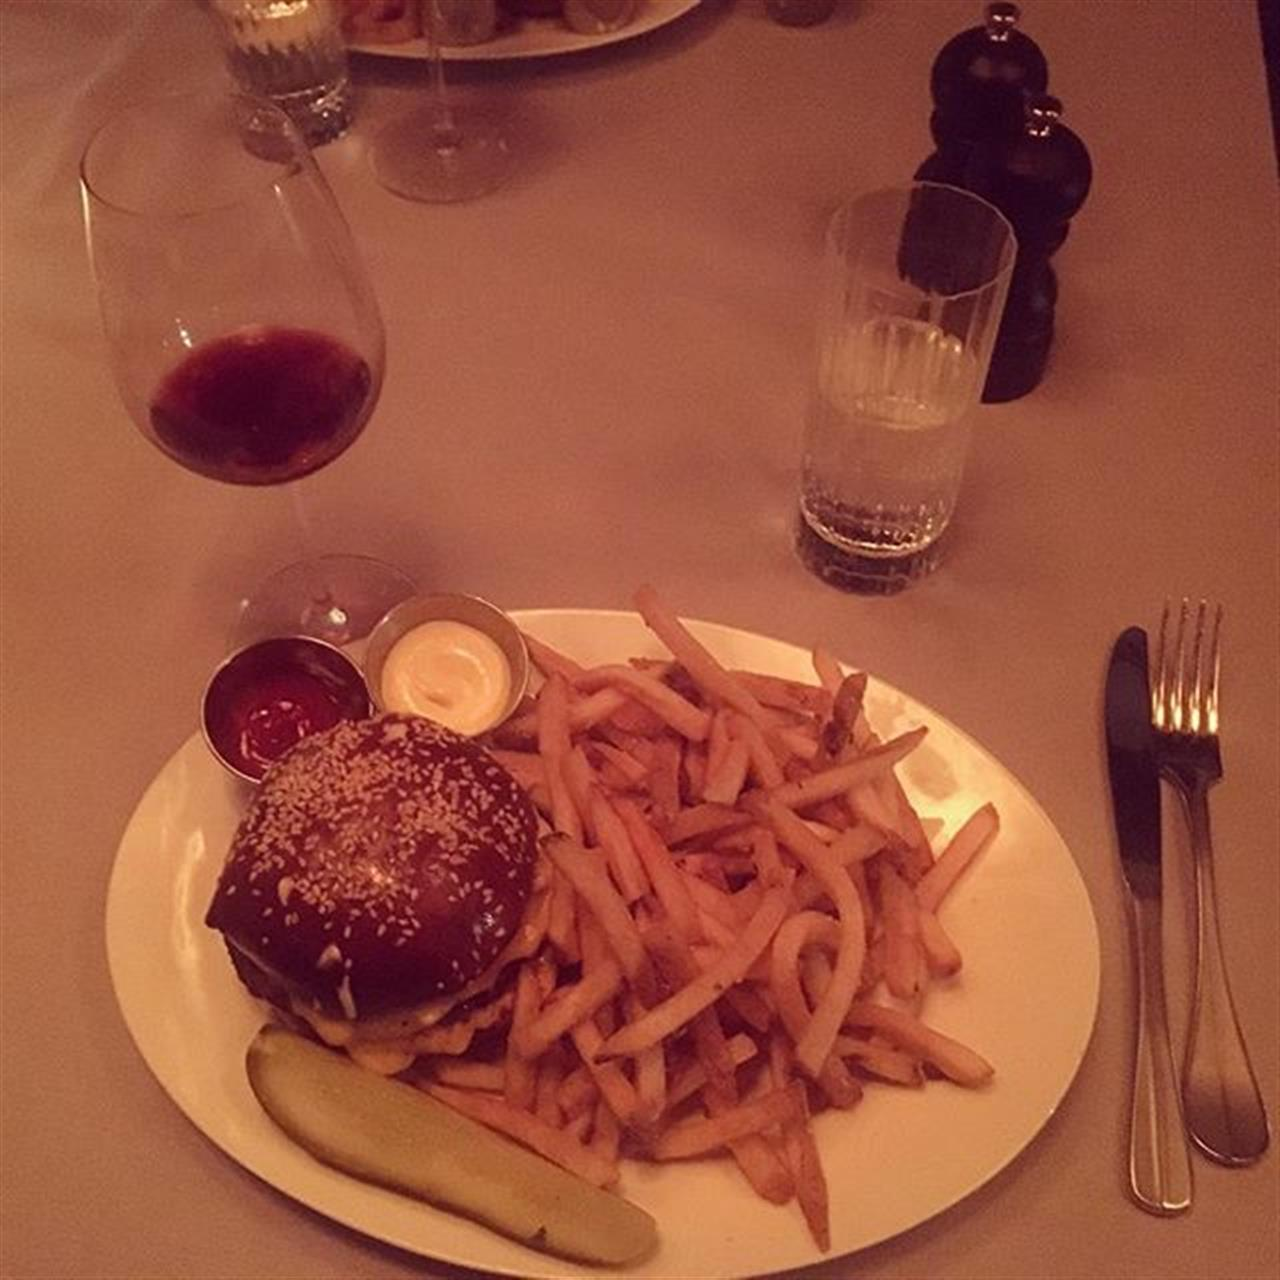 Everything about this burger has us planning a trip back. #chicago #burger #8bar #mapleandash #fries #wine #sesameseedbun #tuscanwine #pickles #ranchtriangle #goldcoast #neighborhood #eatlocal #leadingrelocal #livelocal #bairdwarner #realestate